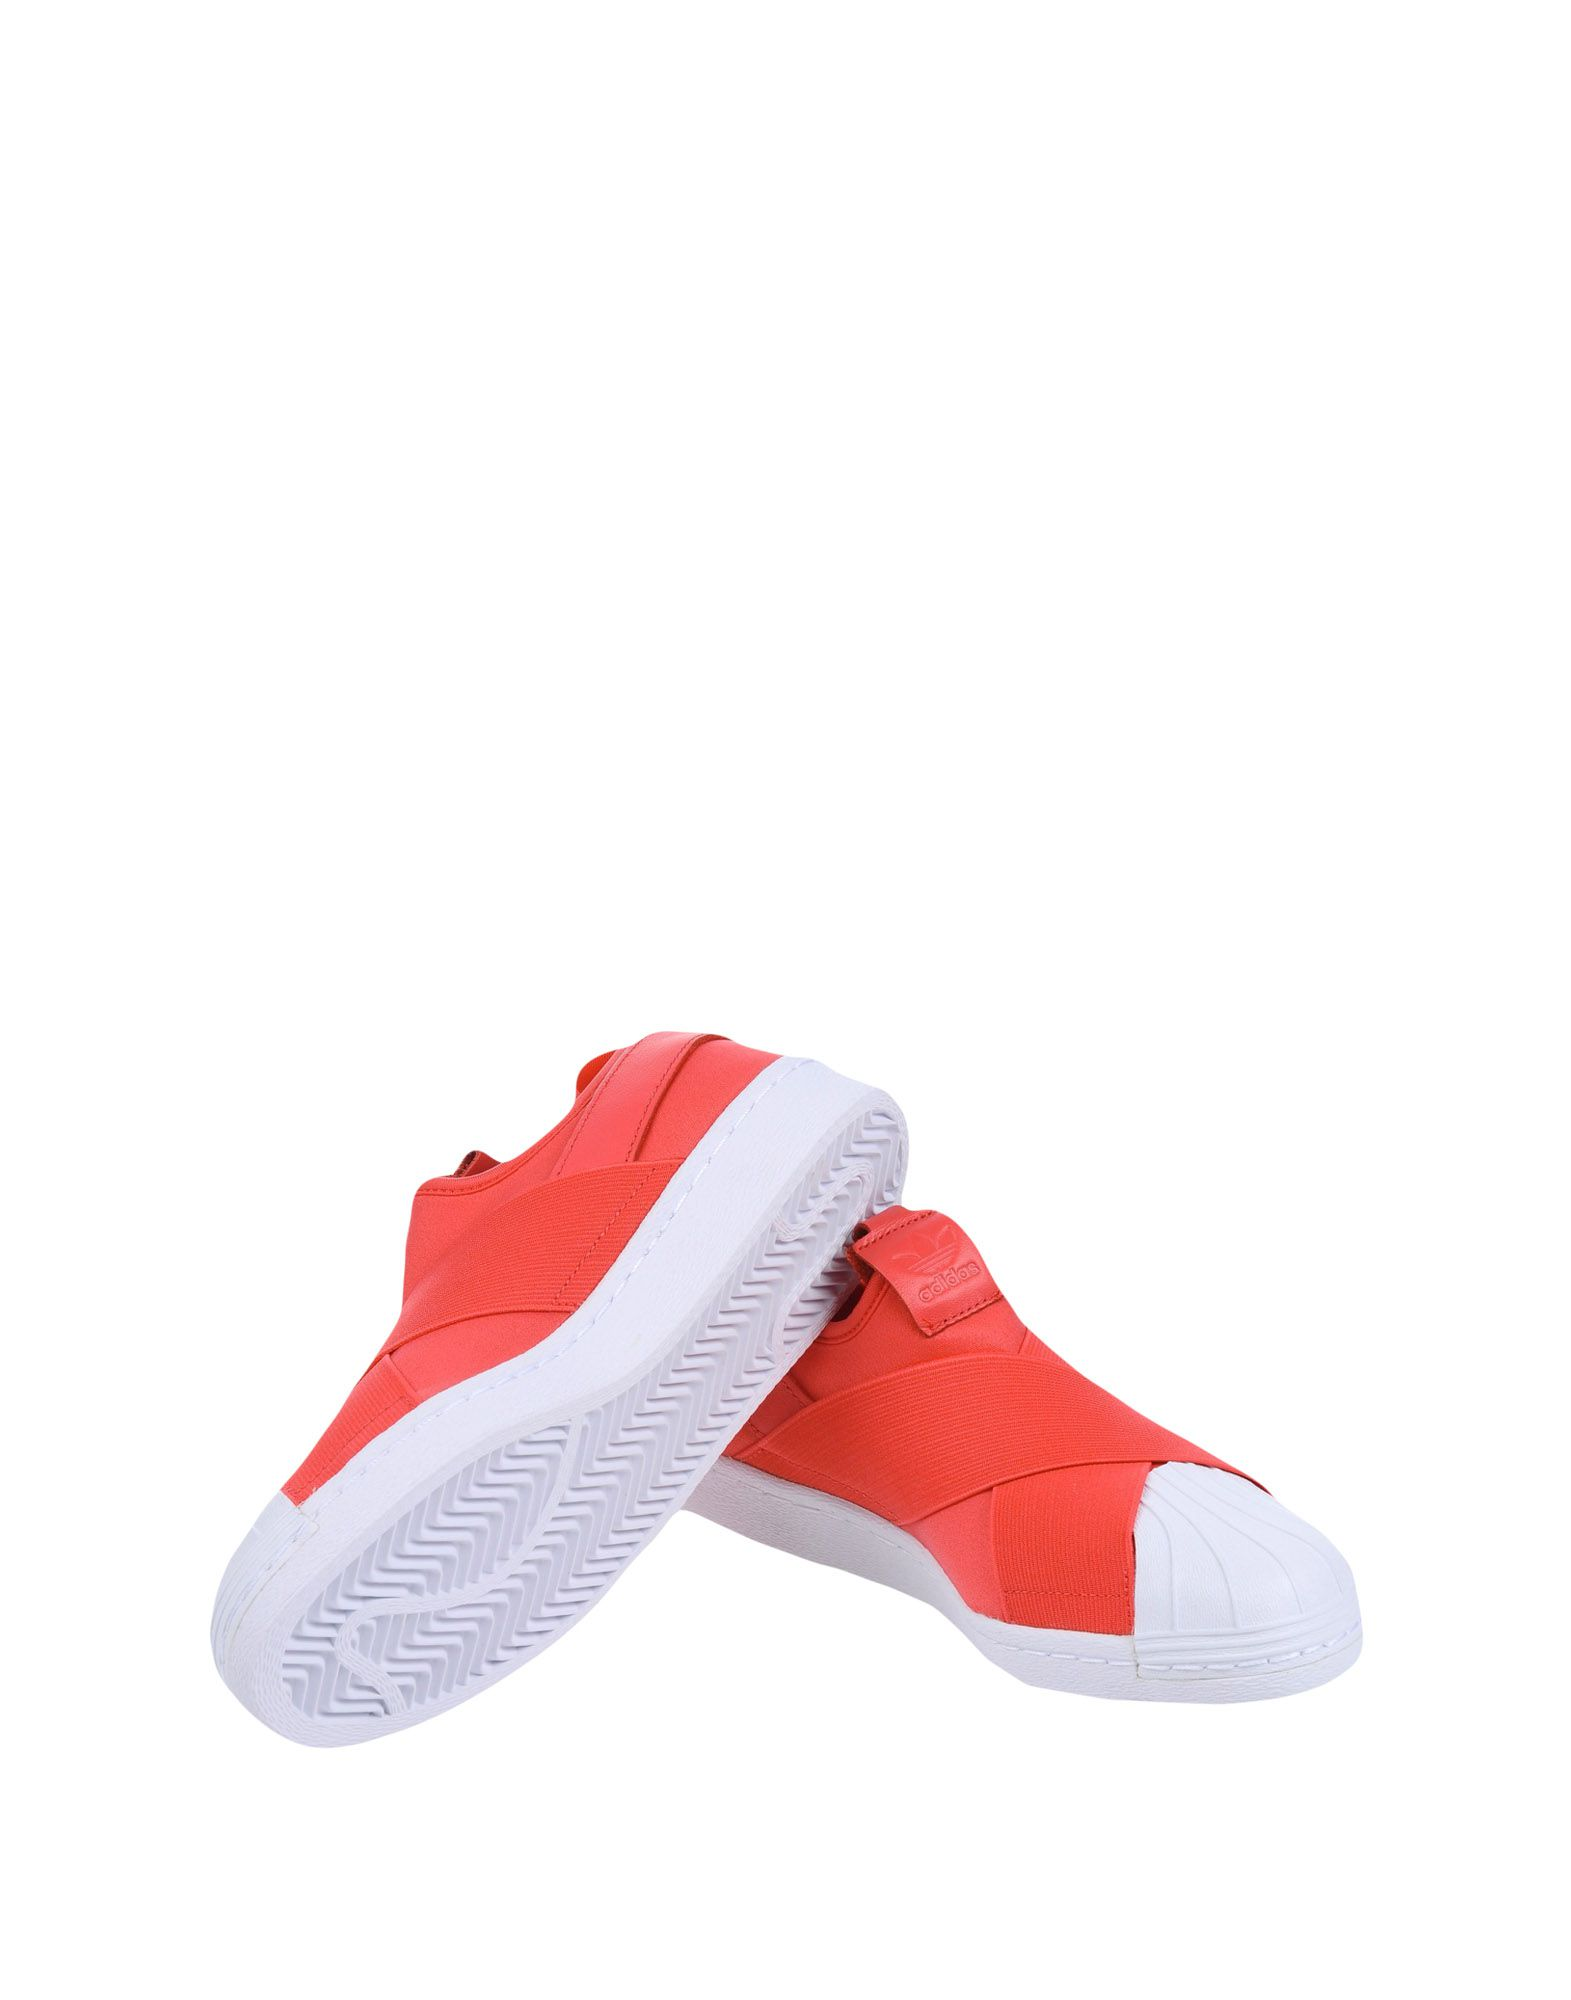 Sneakers Adidas Originals Superstar Slip On W - Femme - Sneakers Adidas Originals sur